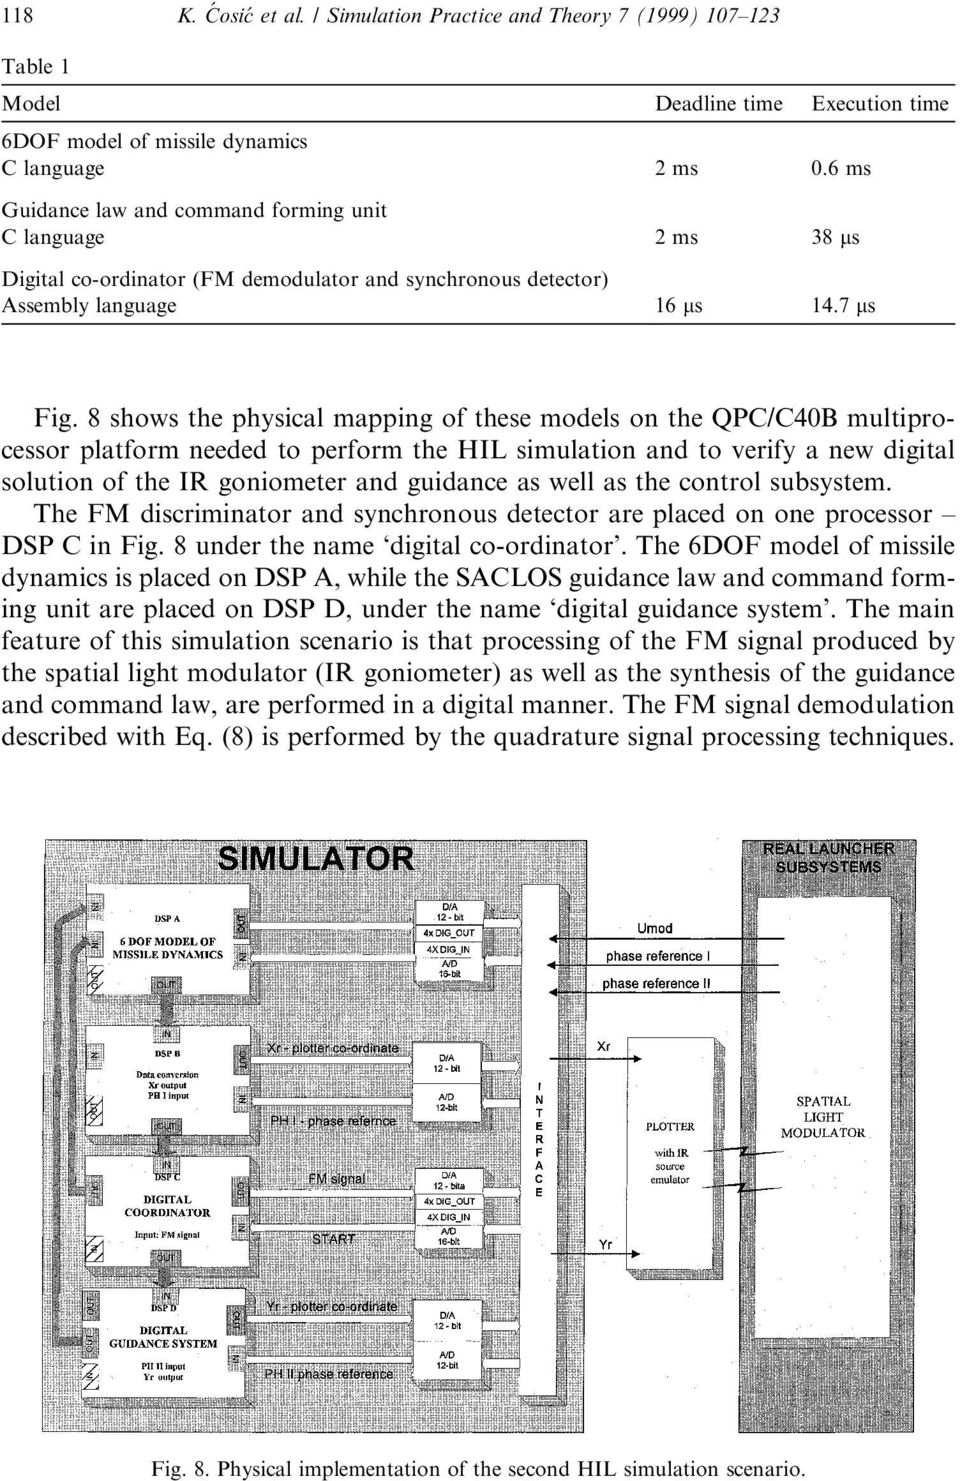 8 shows the physical mapping of these models on the QPC/C40B multiprocessor platform needed to perform the HIL simulation and to verify a new digital solution of the IR goniometer and guidance as